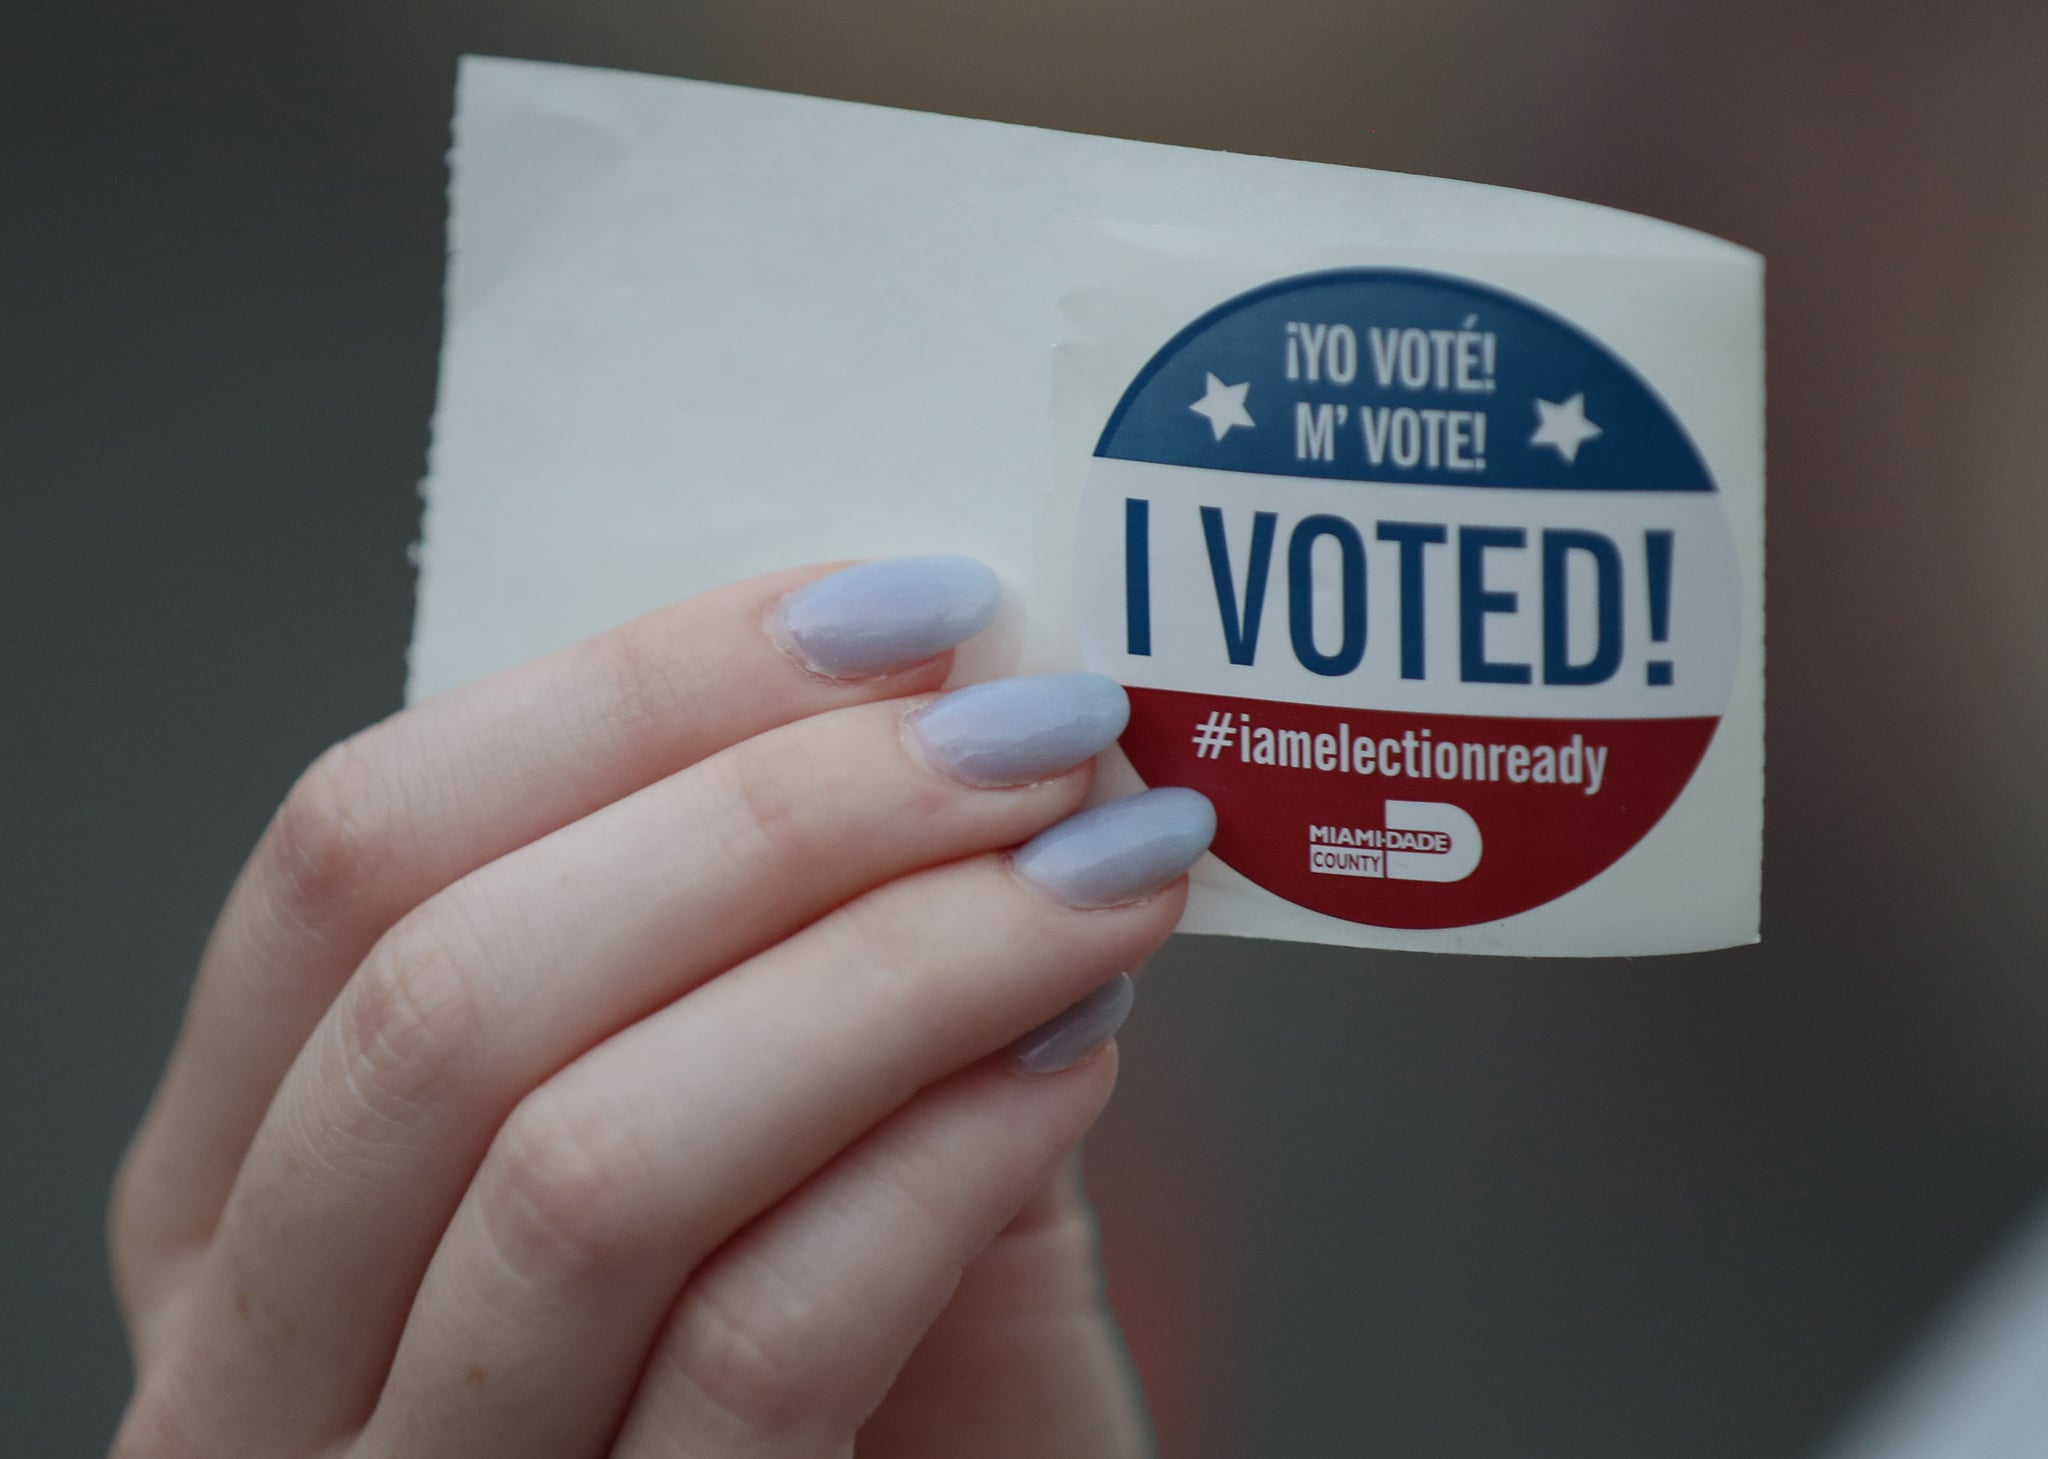 MIAMI, FL  - MARCH 17: A voter shows off her, 'I voted!', sticker after casting a ballot  in her precinct during the Florida presidential primary as the coronavirus pandemic continues on March 17, 2020 in Miami, Florida.  People are heading to the polls to vote for their Republican and Democratic choice in their parties' respective primaries during the COVID-19 outbreak. (Photo by Joe Raedle/Getty Images)